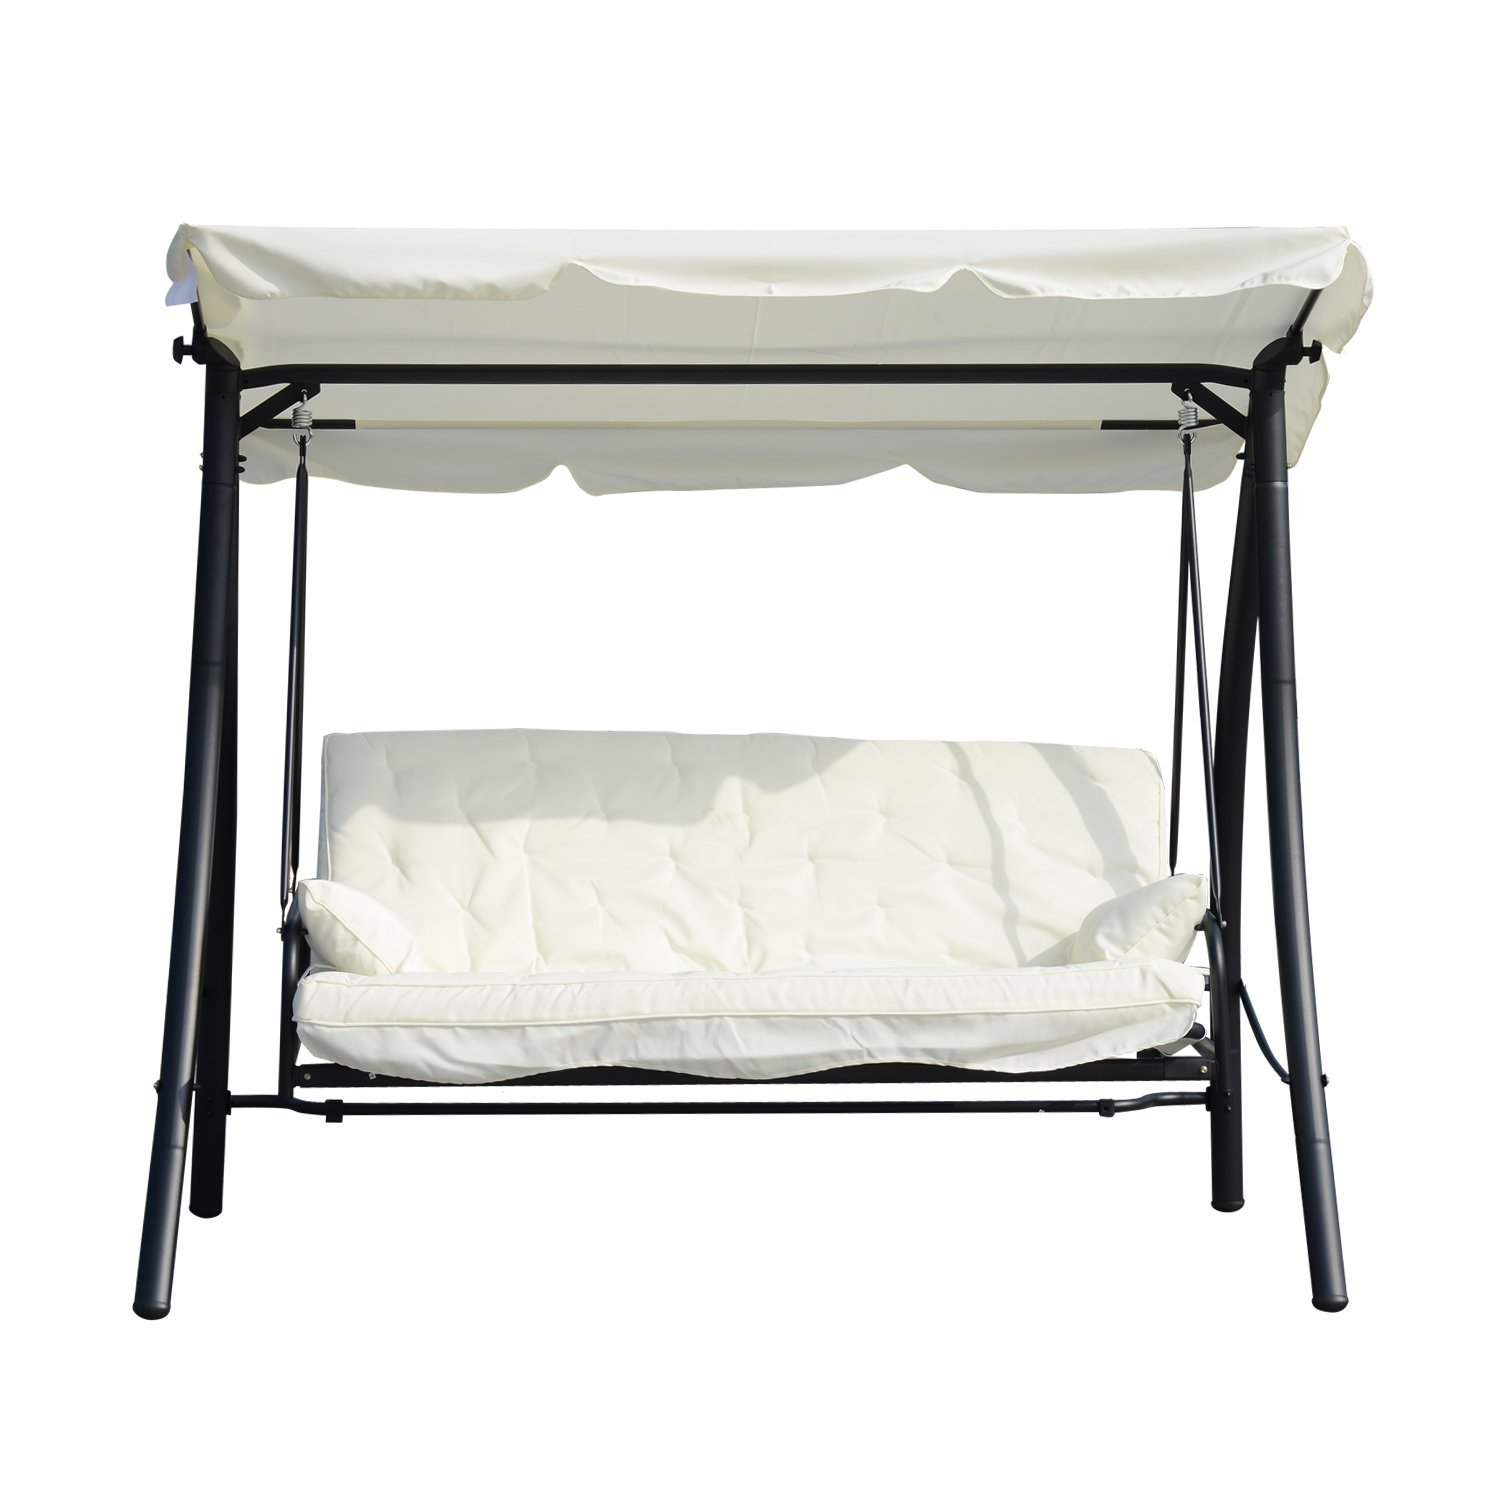 Outsunny Rocking 3 Reclining Seats With Roof Transformable Polyester Garden Bed 200x125x170 Cm Cream